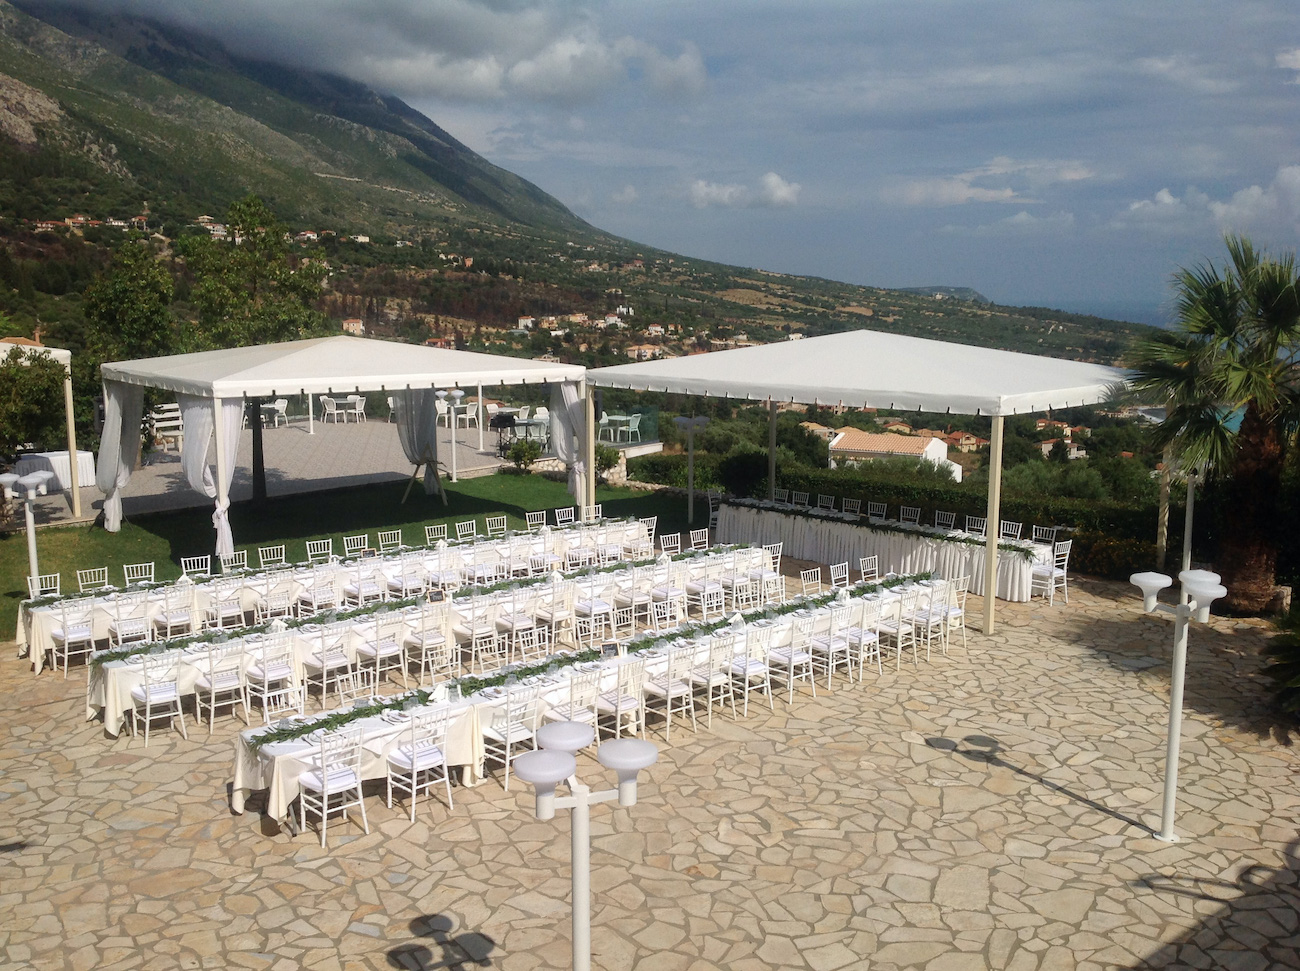 images/kefalonia_weddings/kefalonia_wedding_venues/kefalonia_wedding_planners/reception_venu_kefalonia/kefalonia_wedding_receptions_007.jpg